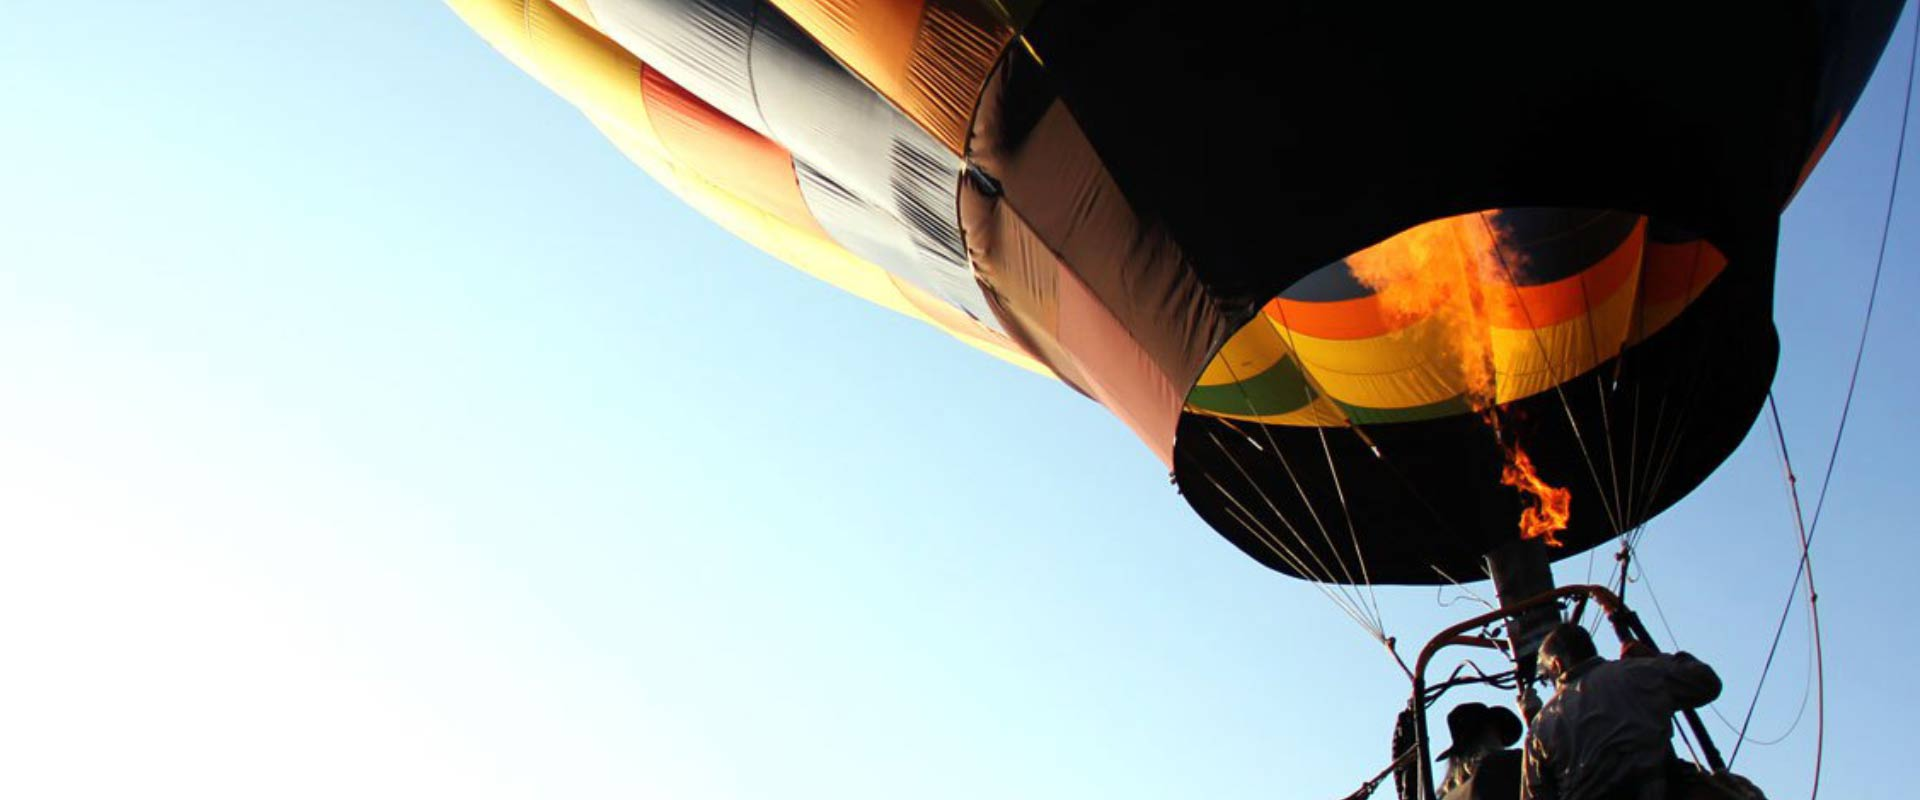 Hot Air Balloon Rides with Experienced Hot Air Balloon Pilots